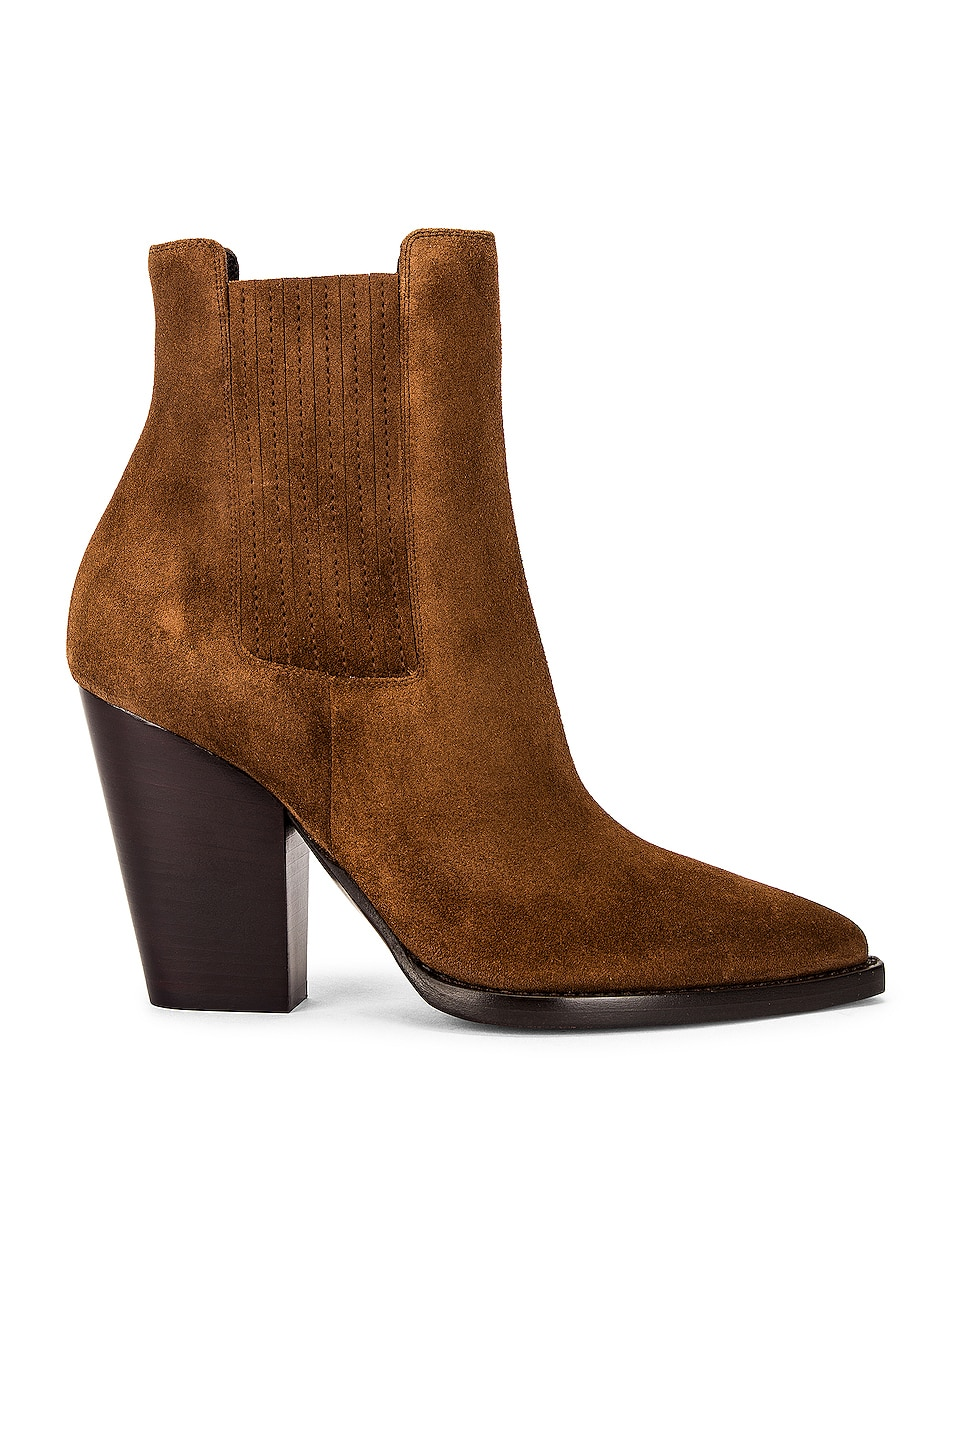 Image 1 of Saint Laurent Theo Chelsea Booties in Land